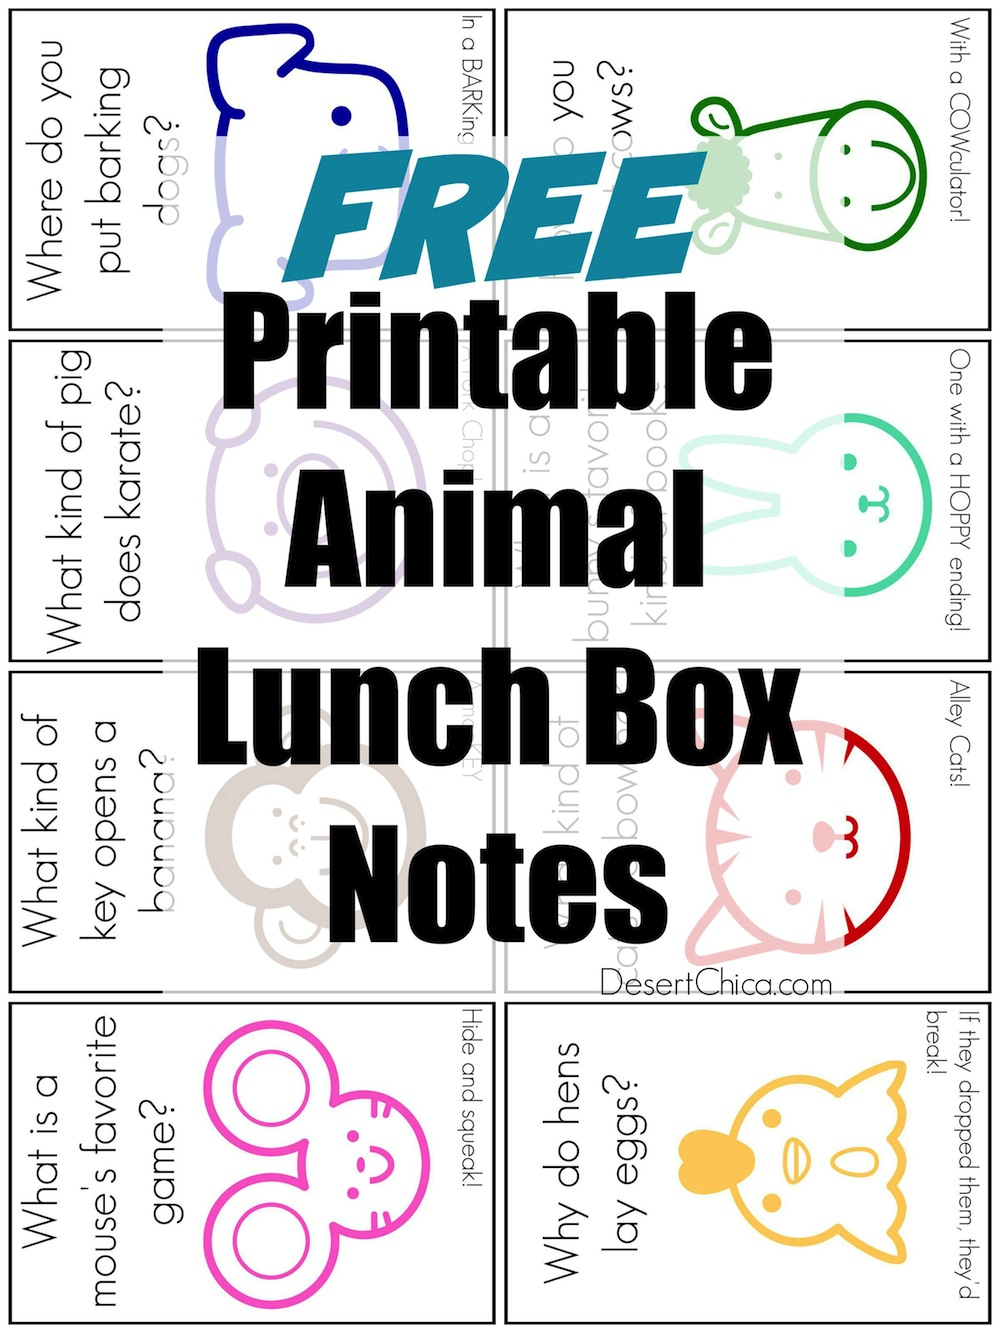 Printable Animal Lunch Box Jokes